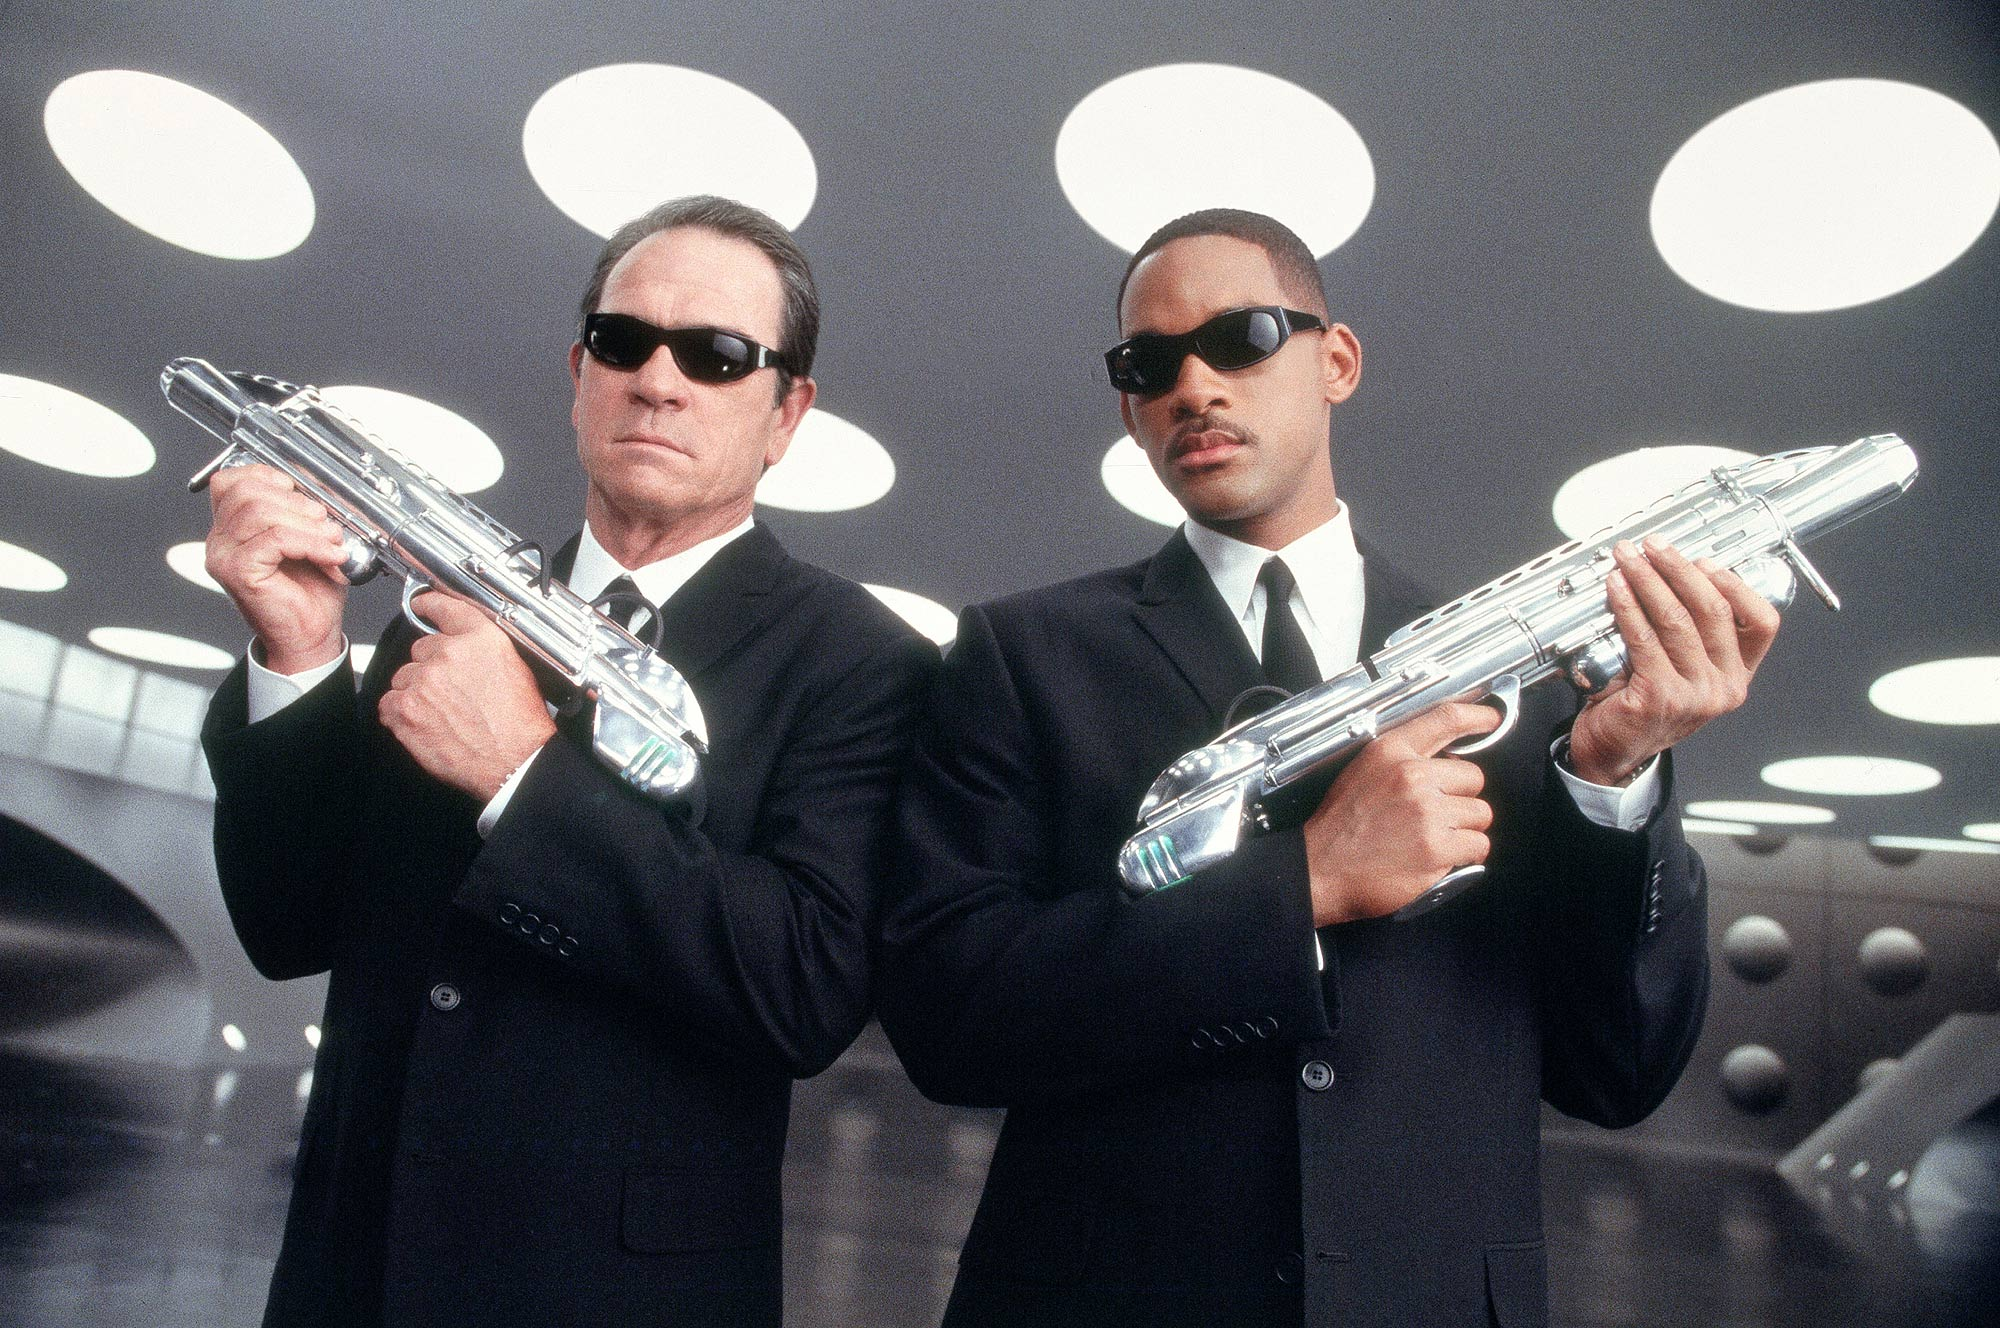 'Men In Black' Spinoff in the Works at Sony Pictures